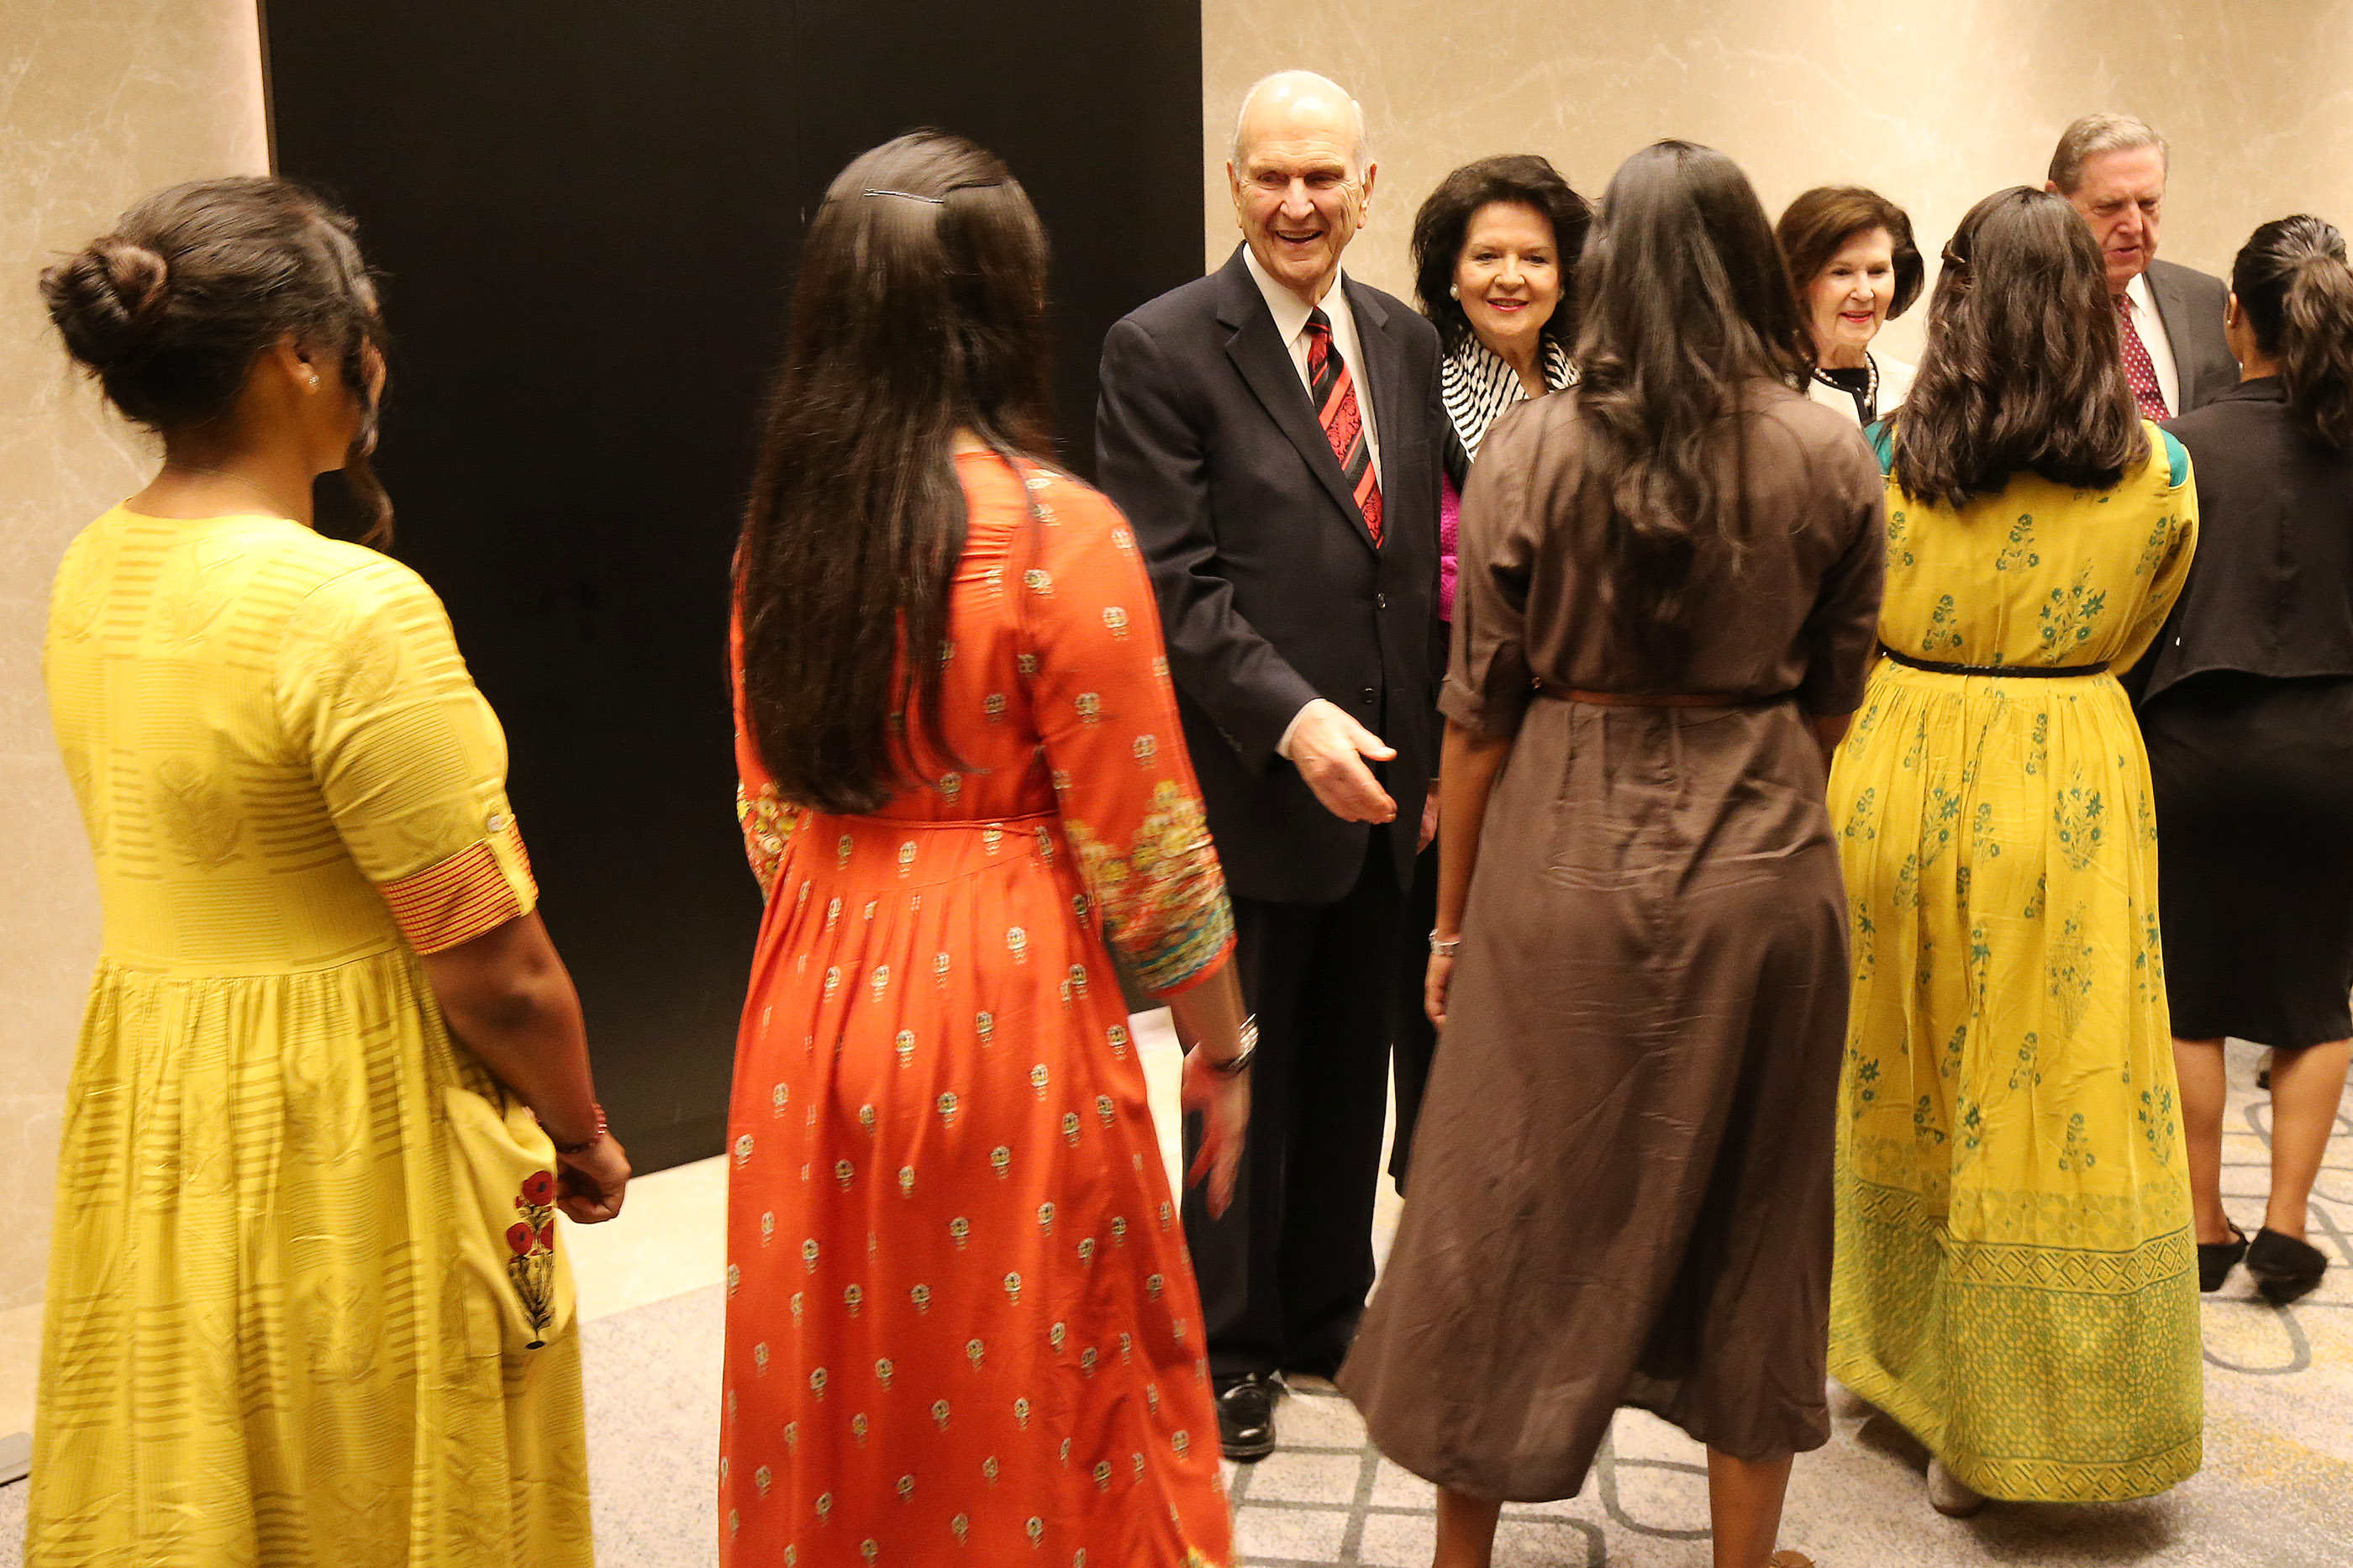 President Russell M. Nelson and Elder Jeffrey R. Holland of the Quorum of the Twelve Apostles, greet missionaries prior to a conference in Bengaluru, India, on Thursday, April 19, 2018.